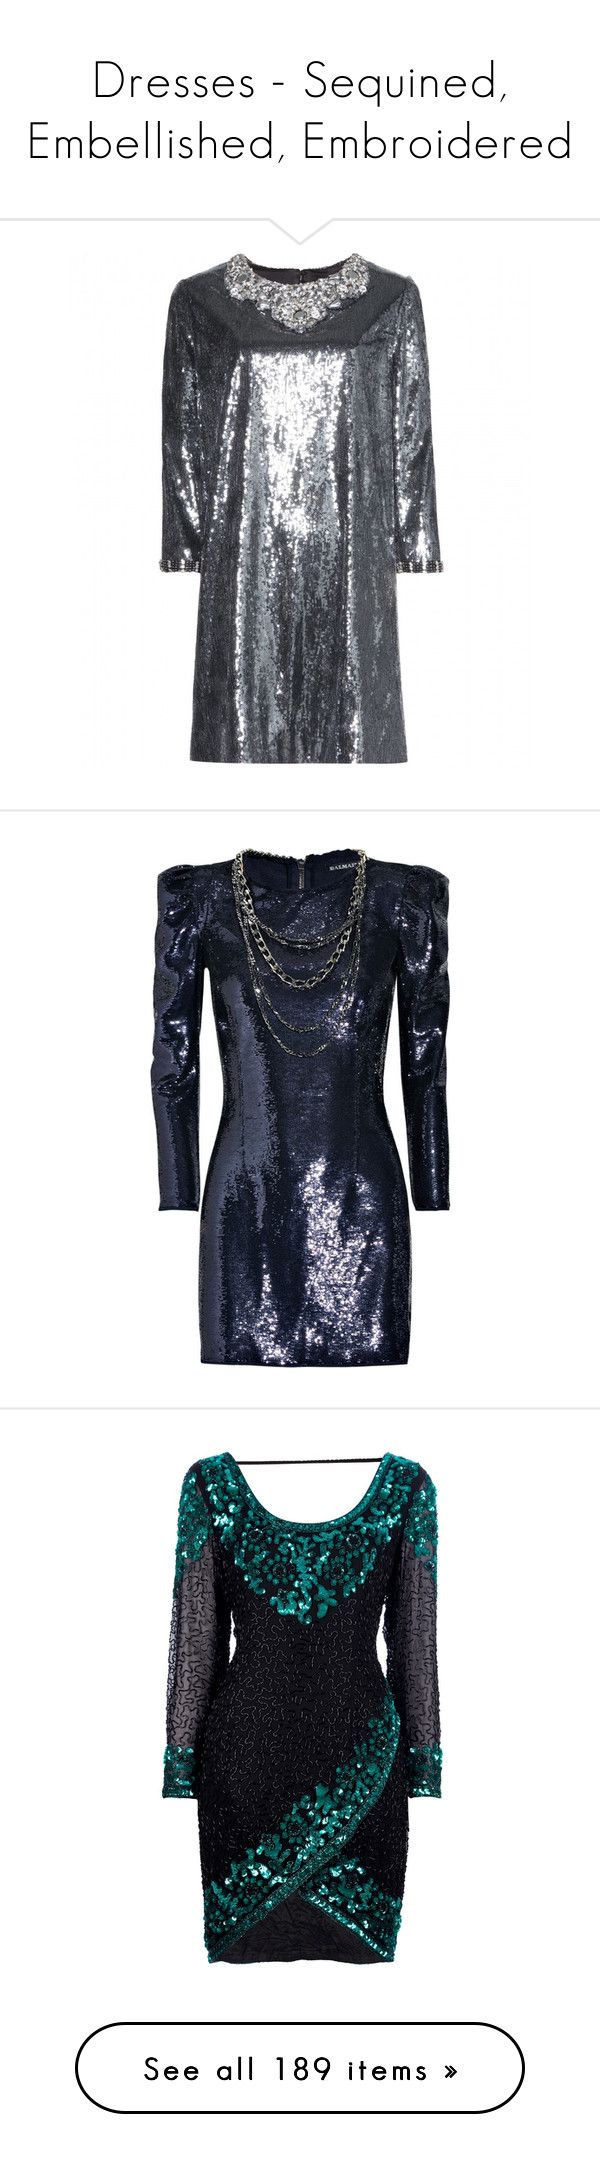 """Dresses - Sequined, Embellished, Embroidered"" by giovanna1995 ❤ liked on Polyvore featuring dresses, cocktail/gowns, metallic, metallic evening dress, sequin cocktail dresses, holiday dresses, metallic cocktail dress, evening cocktail dresses, vestidos and balmain"